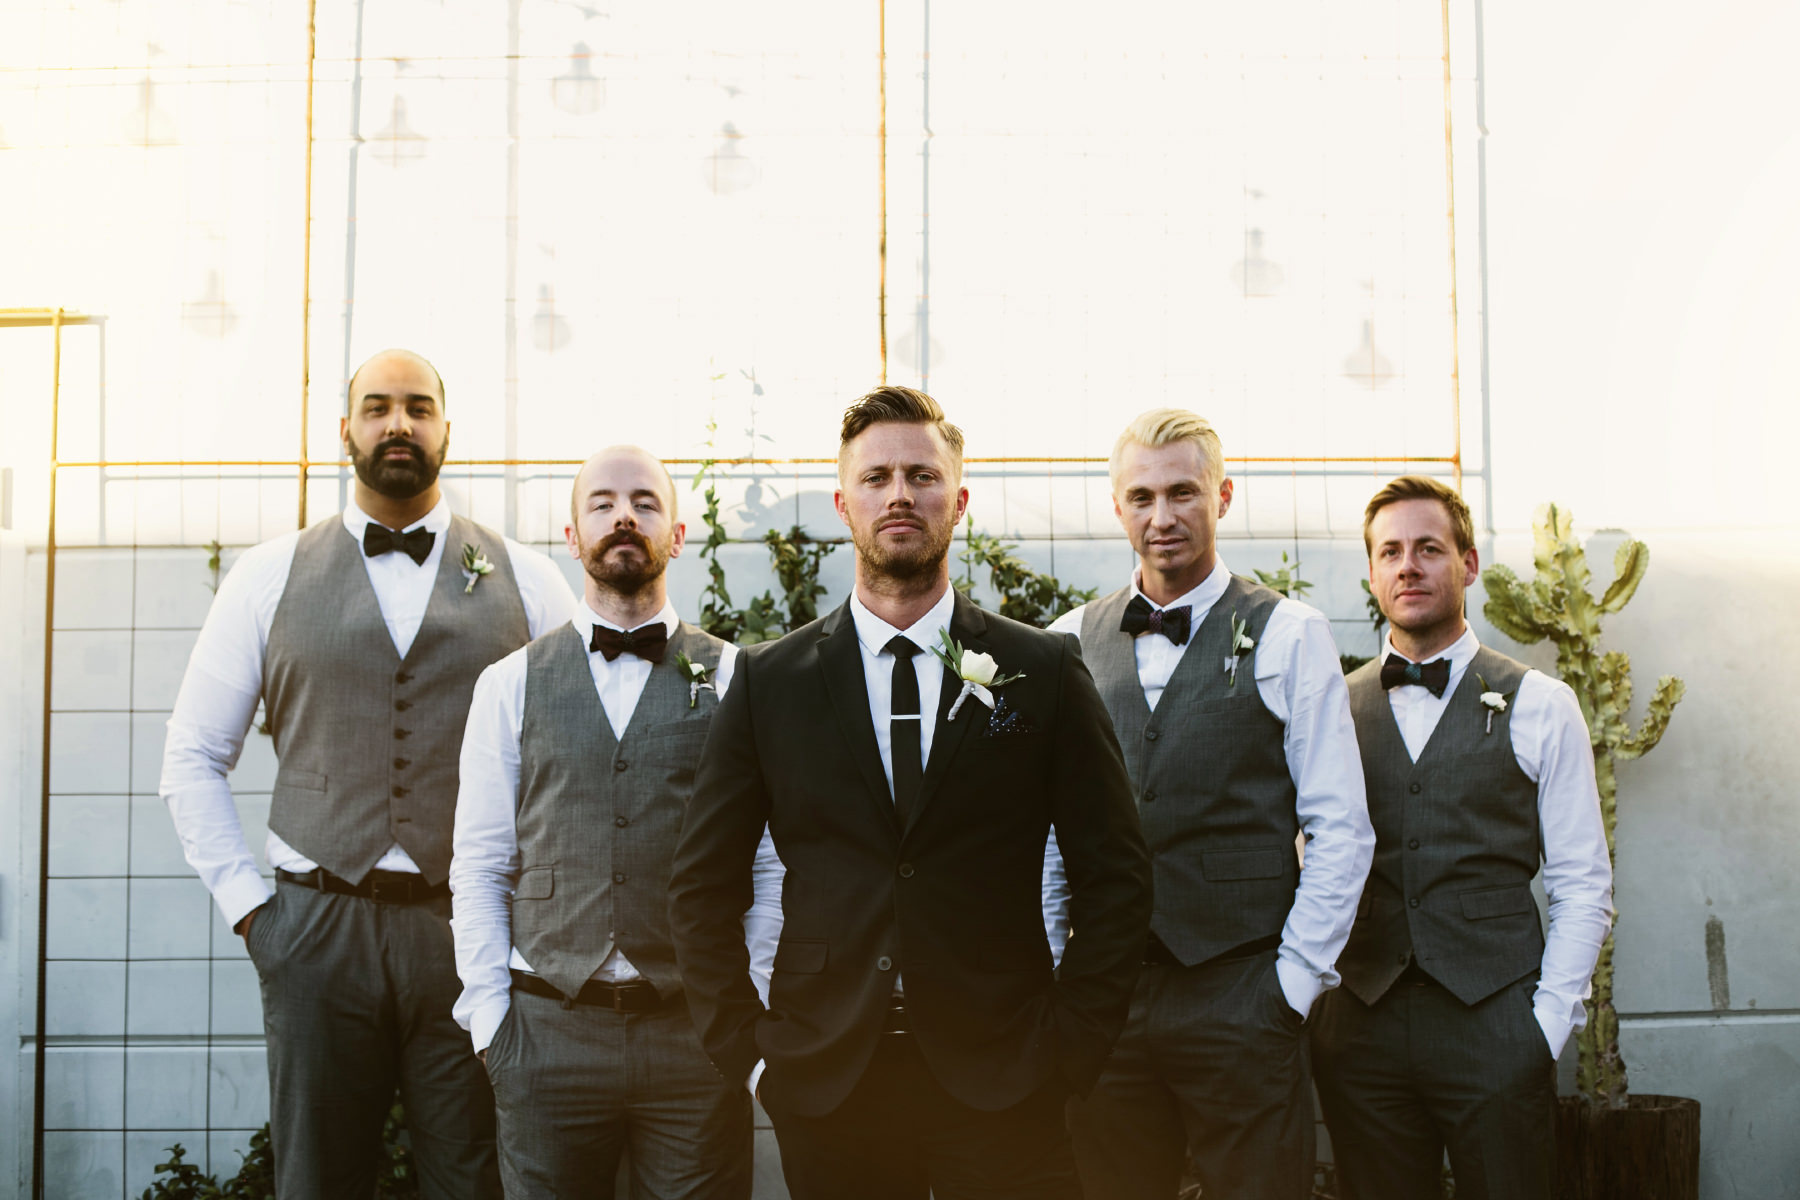 Groom posing with his groomsmen wearing grey vests and bowties at Booze Brothers in San Diego